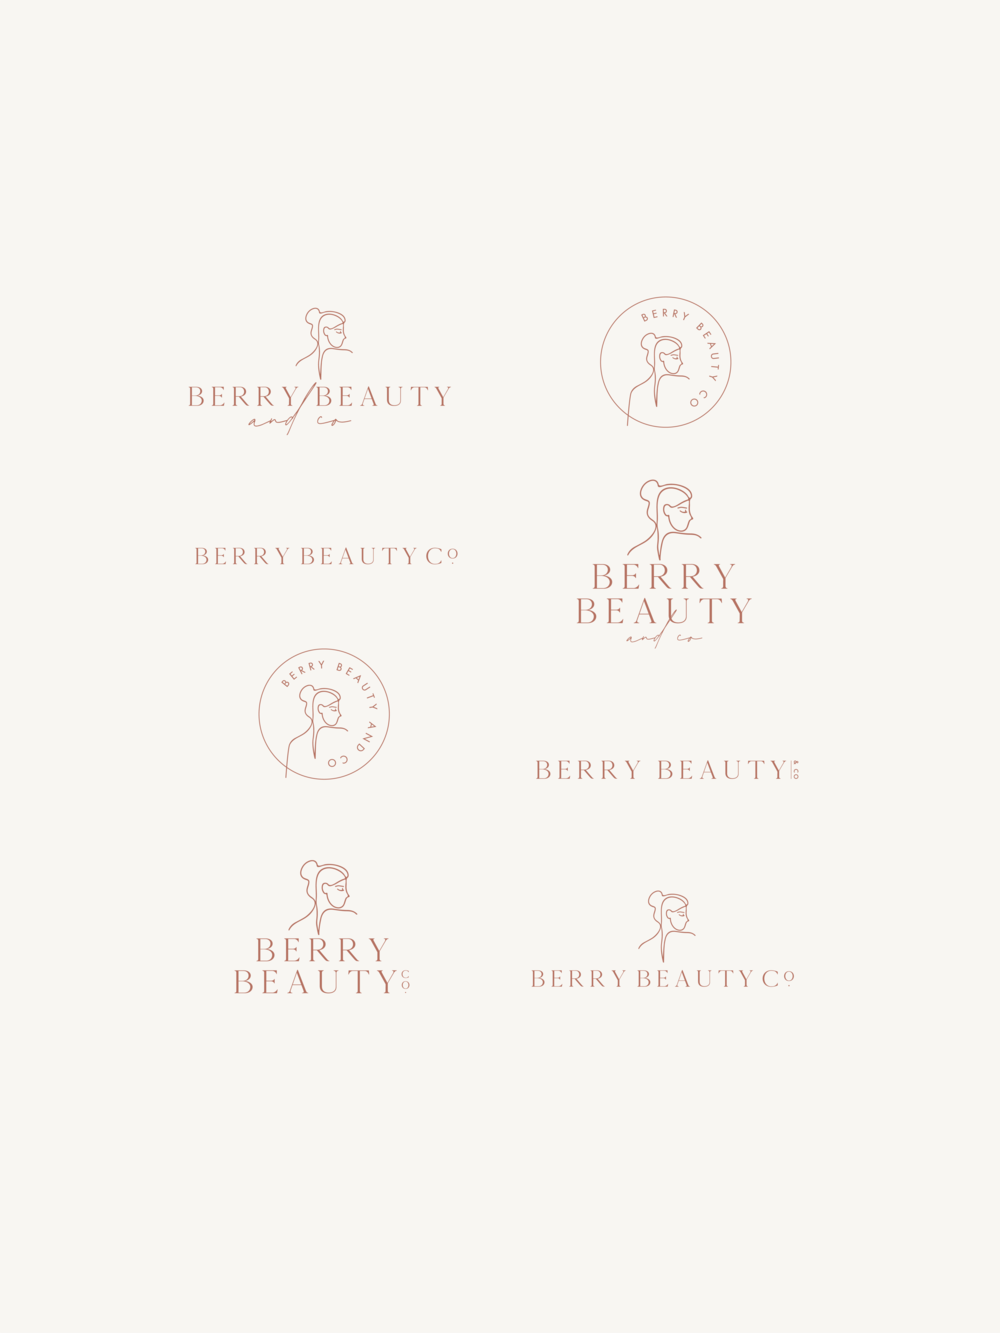 Berry Beauty & Co logos - by January Made Design